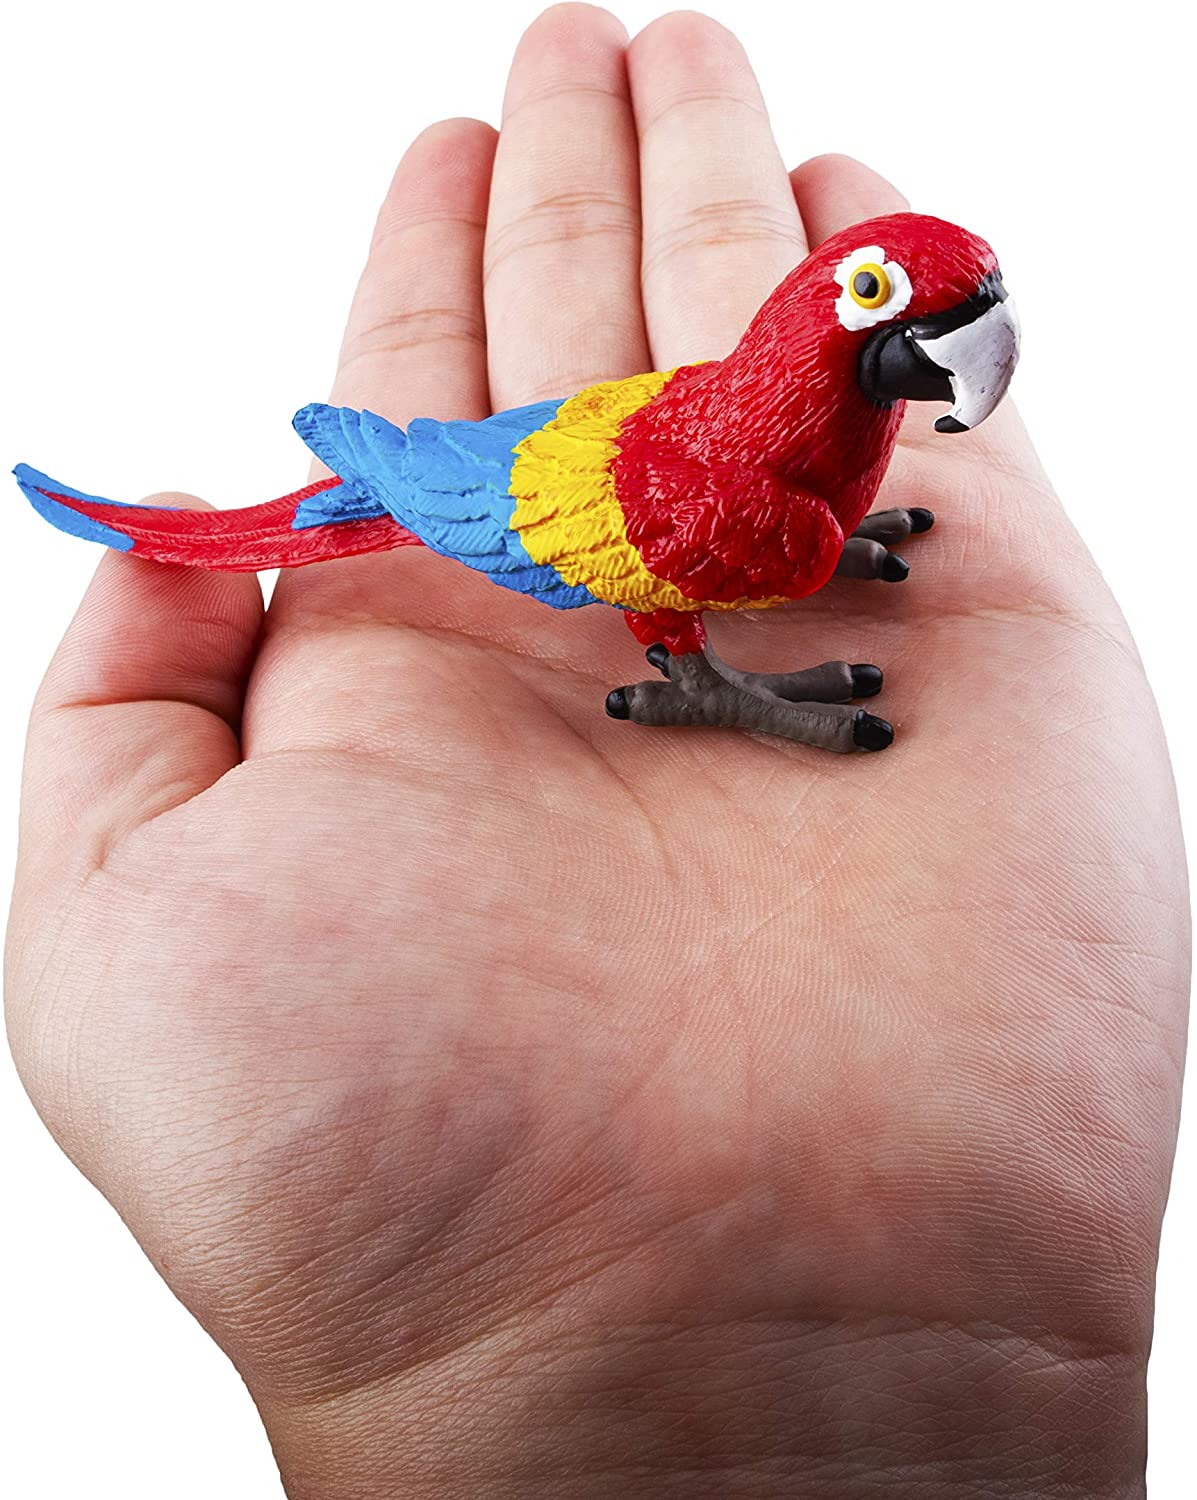 Educational Toy Cake Toppers Christmas Birthday Gift for Kids Toddlers TOYMANY 9PCS Realistic Parrot Birds Figurines 2-4 Plastic Macaw Animals Figures Set Includes Cockatoo,Scarlet Macaw